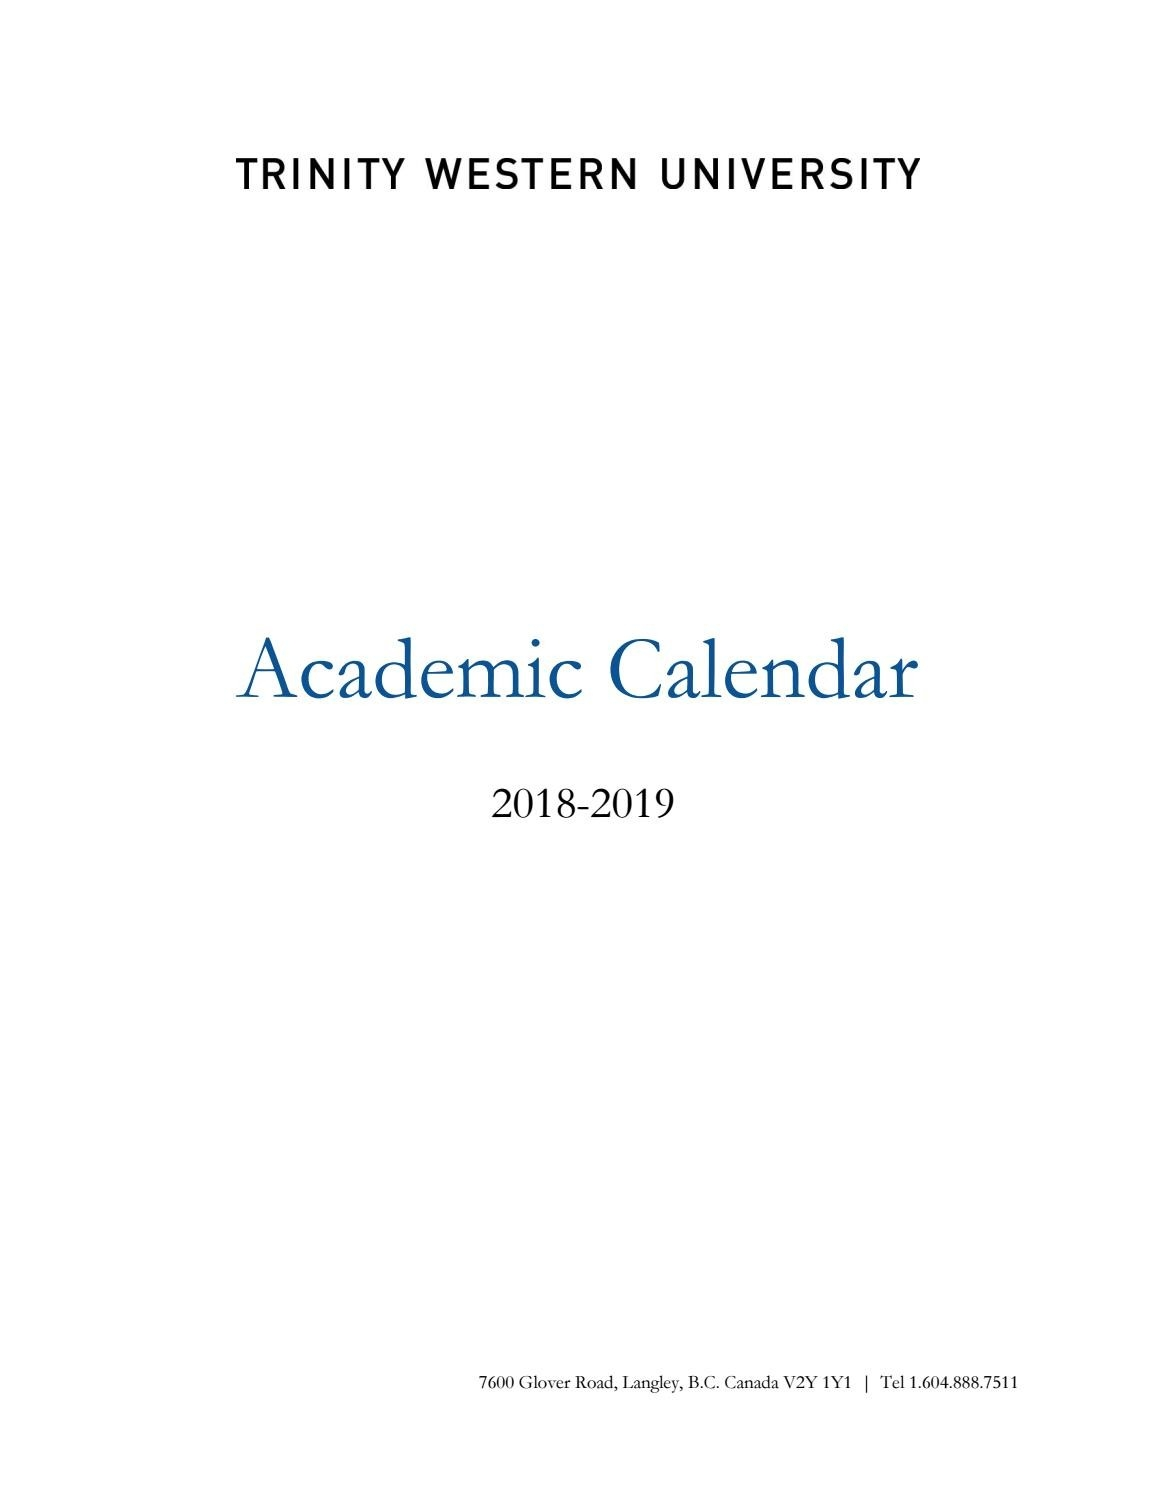 Twu Academic Calendar 2018-2019Twu - Issuu  Unite Methodist Calender - Christian Calender Year Subjects